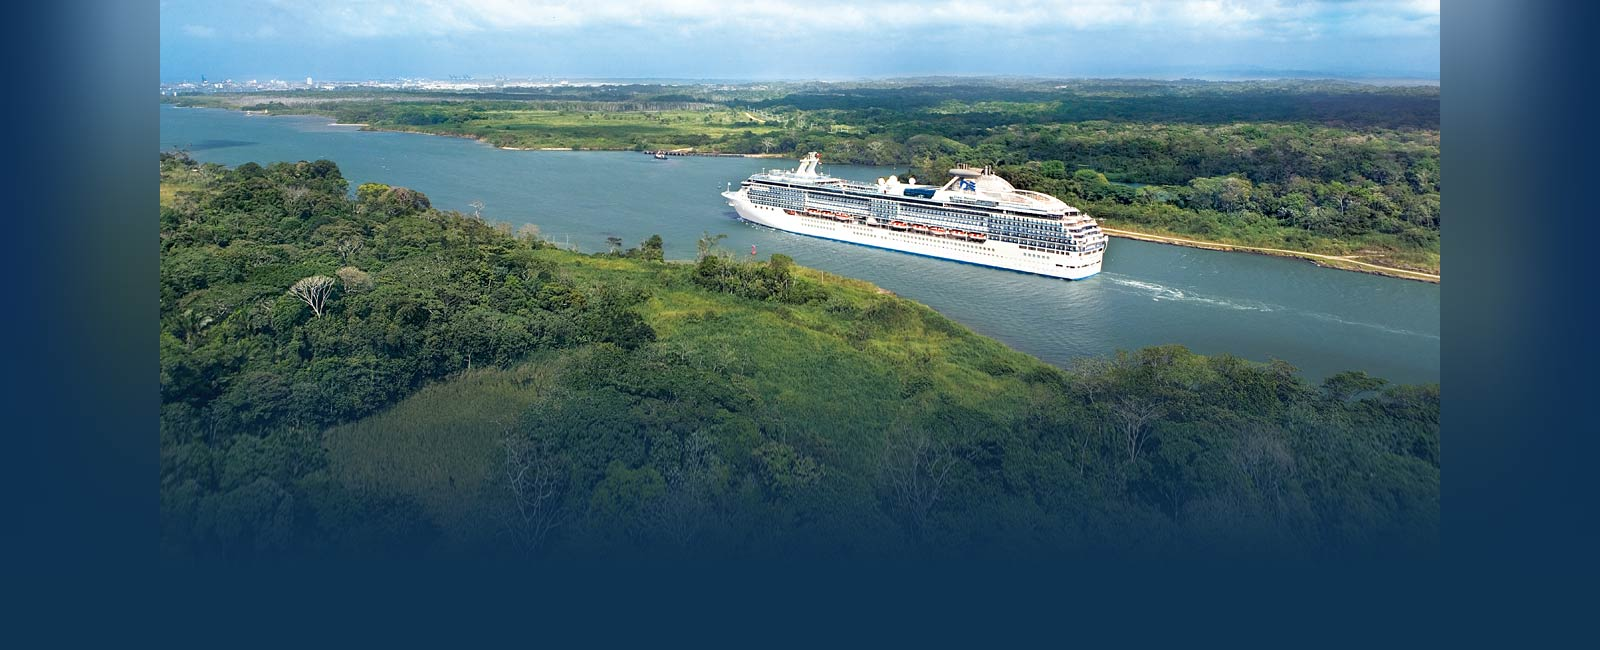 Transiting the Panama Canal on a Princess ship